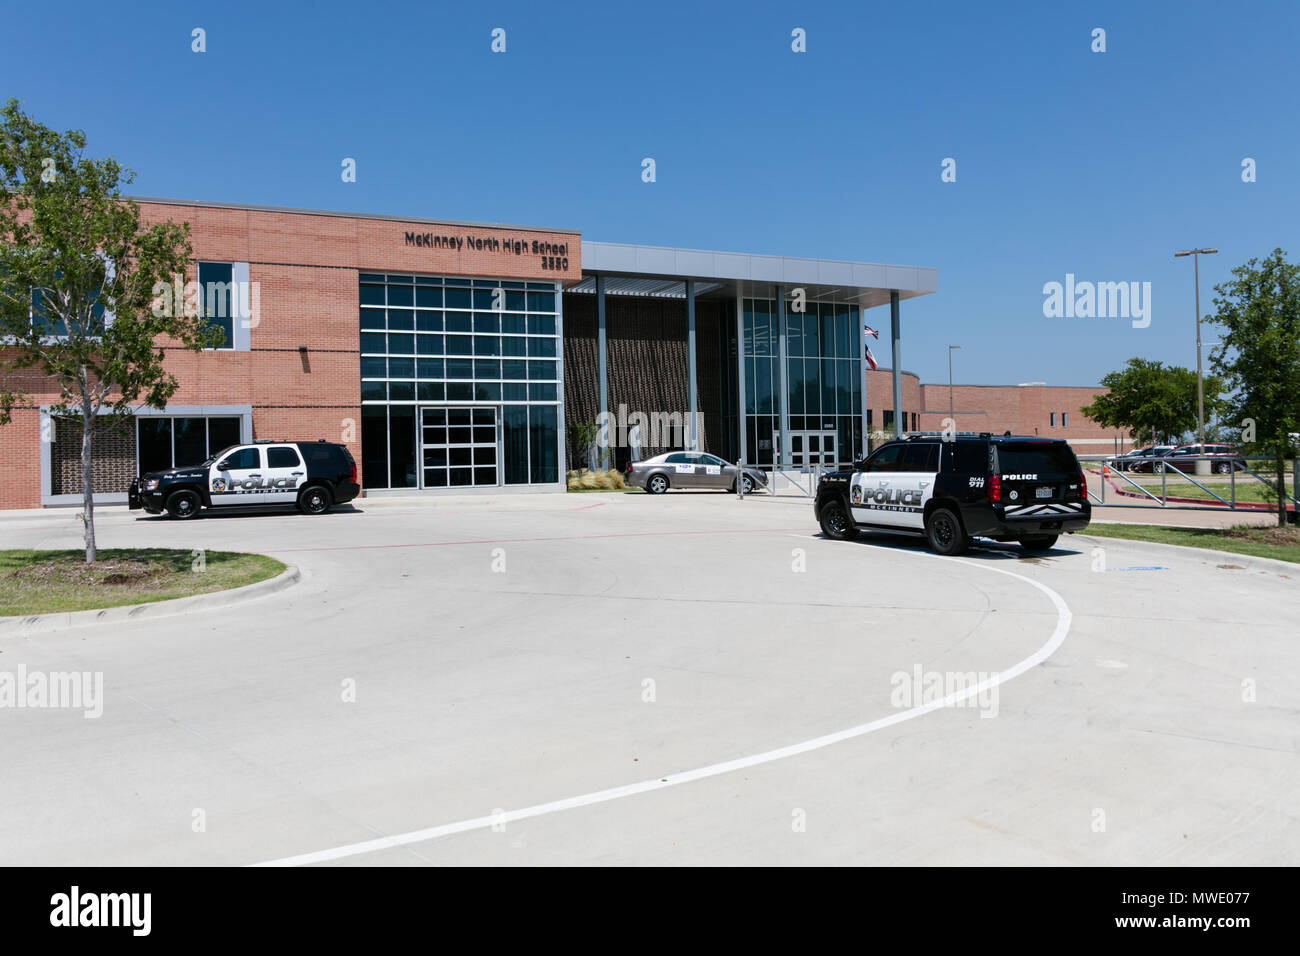 Dallas, USA. 1st June, 2018. Police cars arrive at the McKinney North High school, about 60 km north of Dallas, Texas, the United States, on June 1, 2018. Local officials confirmed Friday that a high school student died from a self-inflicted gunshot wound in McKinney North High School. Credit: Tian Dan/Xinhua/Alamy Live News - Stock Image